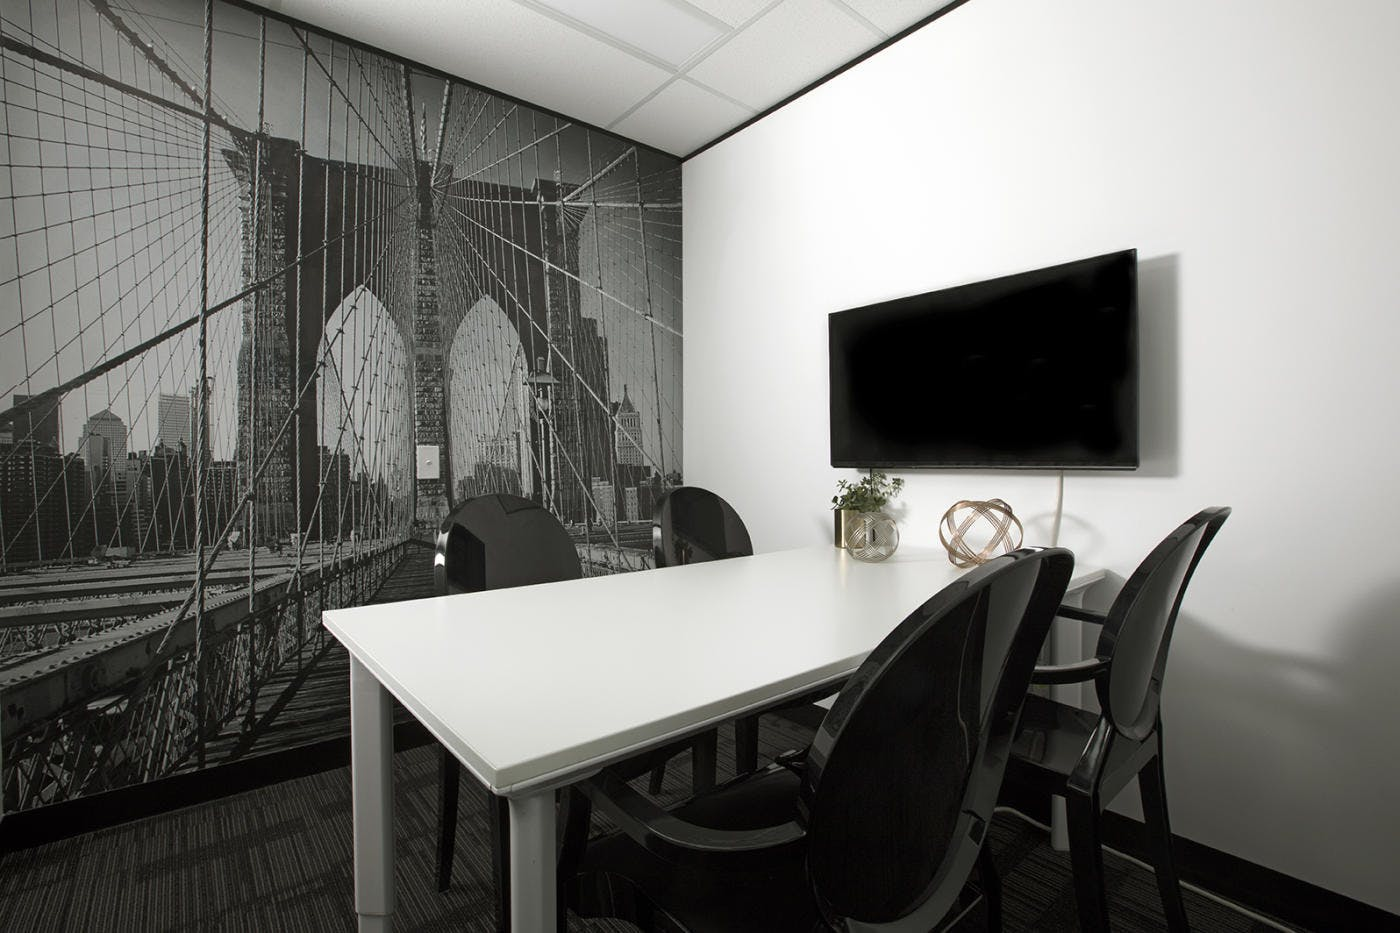 Meeting Room, meeting room at Anytime Offices, image 3